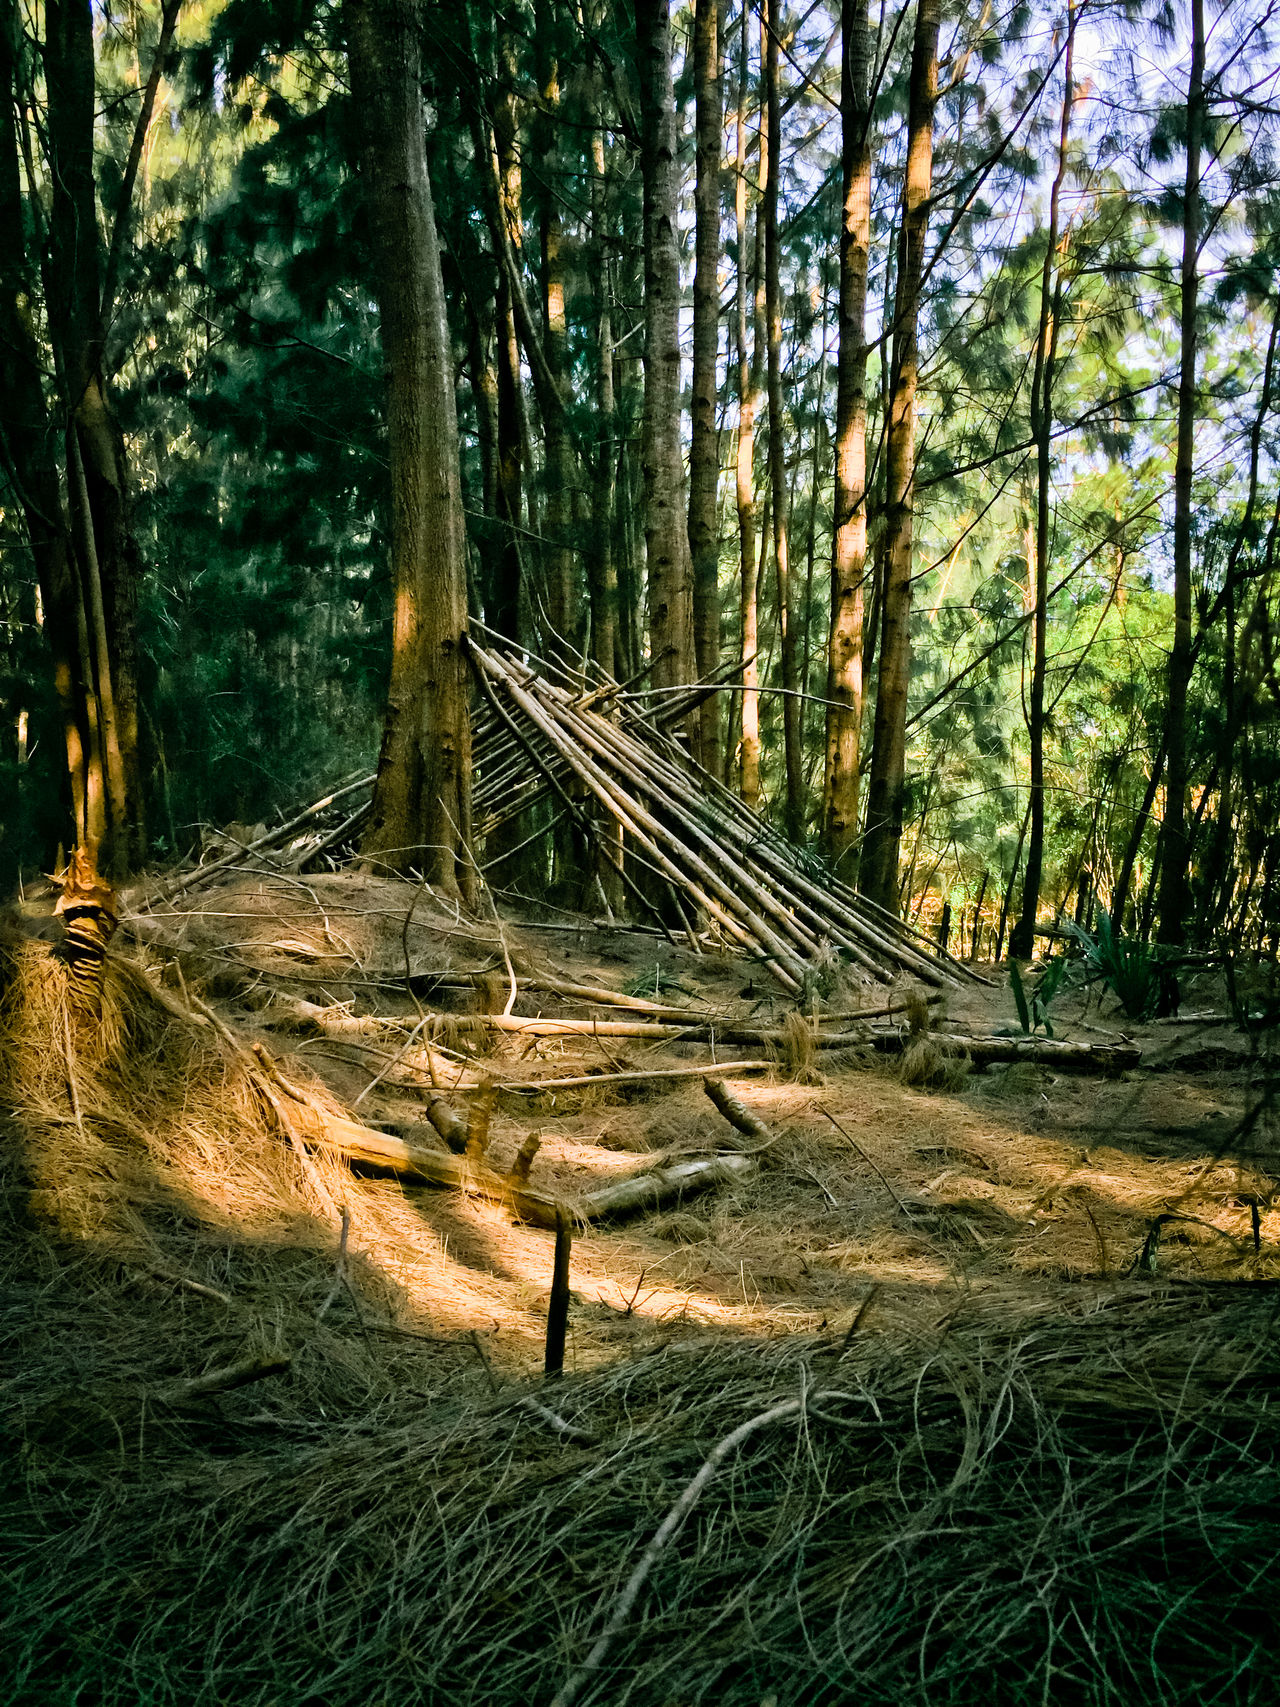 Primative shelter in australian pines Australian Pine Tree Beauty In Nature Day Forest Growth Nature No People Outdoors Pine Needles Pine Tree Pine Trees Against The Sky Pine Woodland Primative Shelter Tranquil Scene Tranquility Tree Tree Trunk